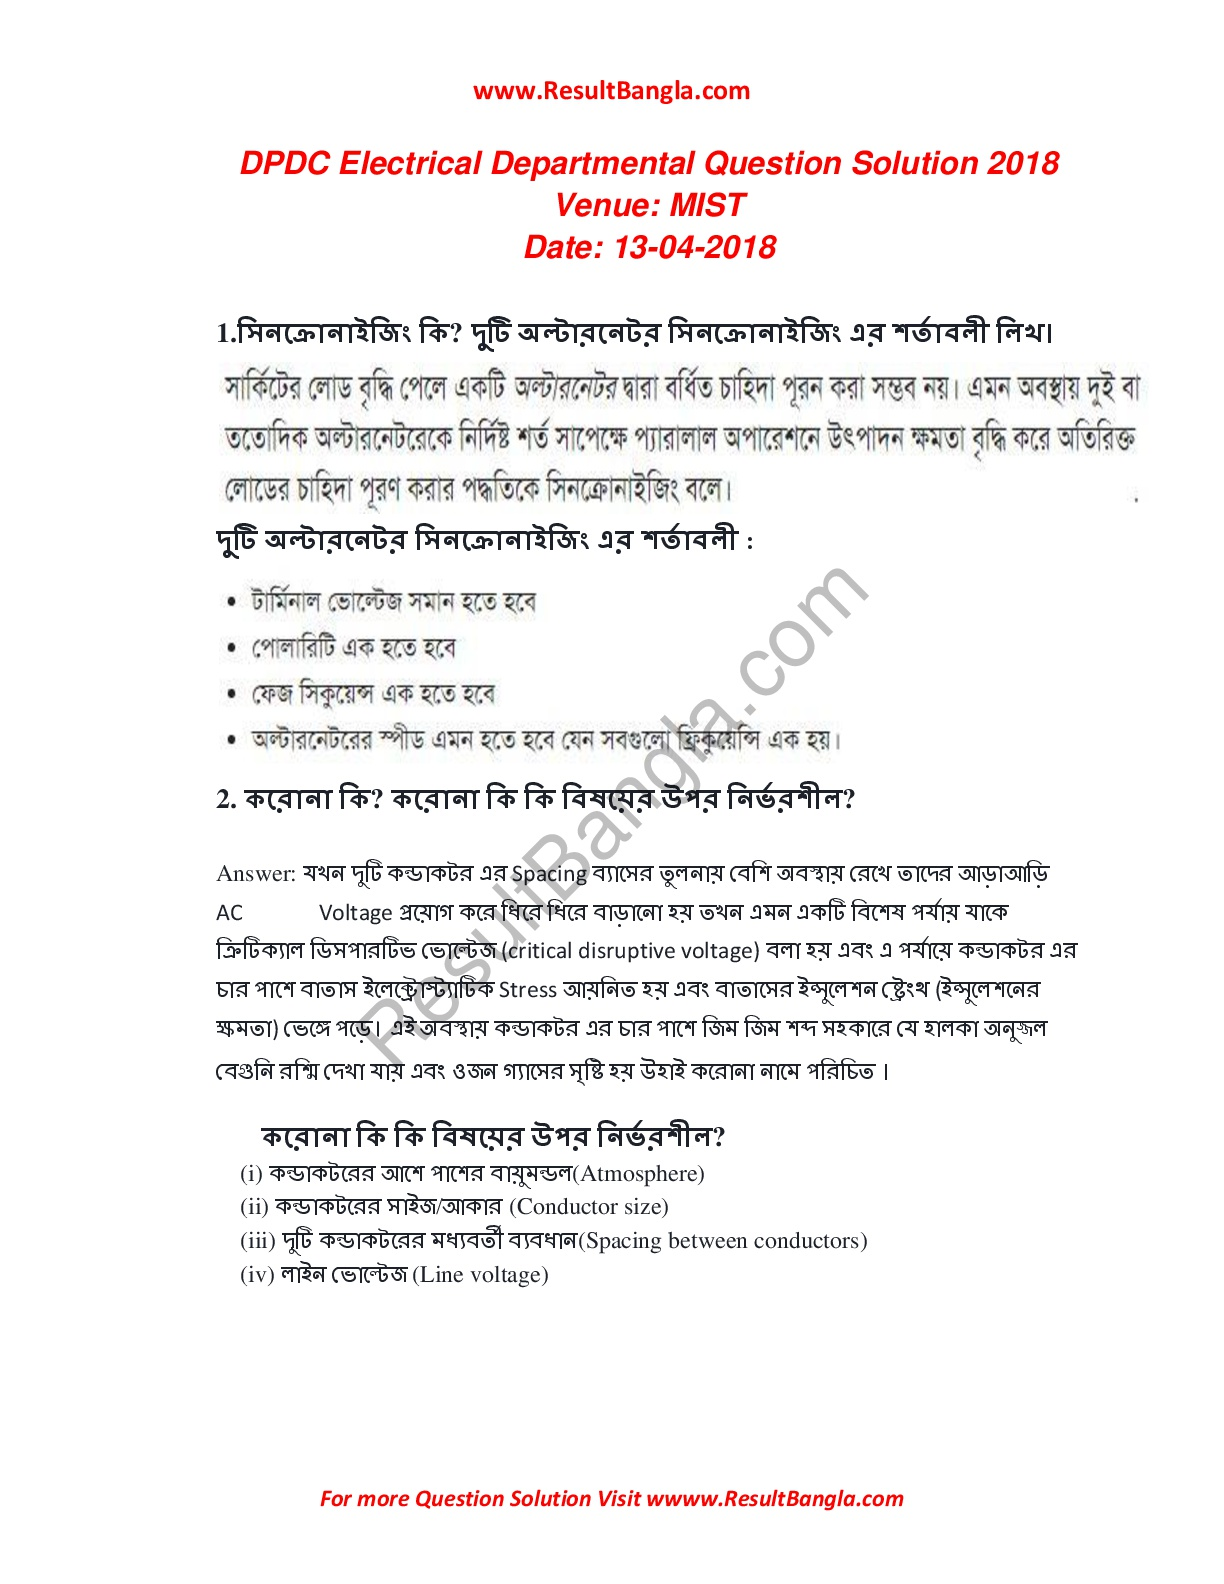 DPDC Exam Question Solution 2018